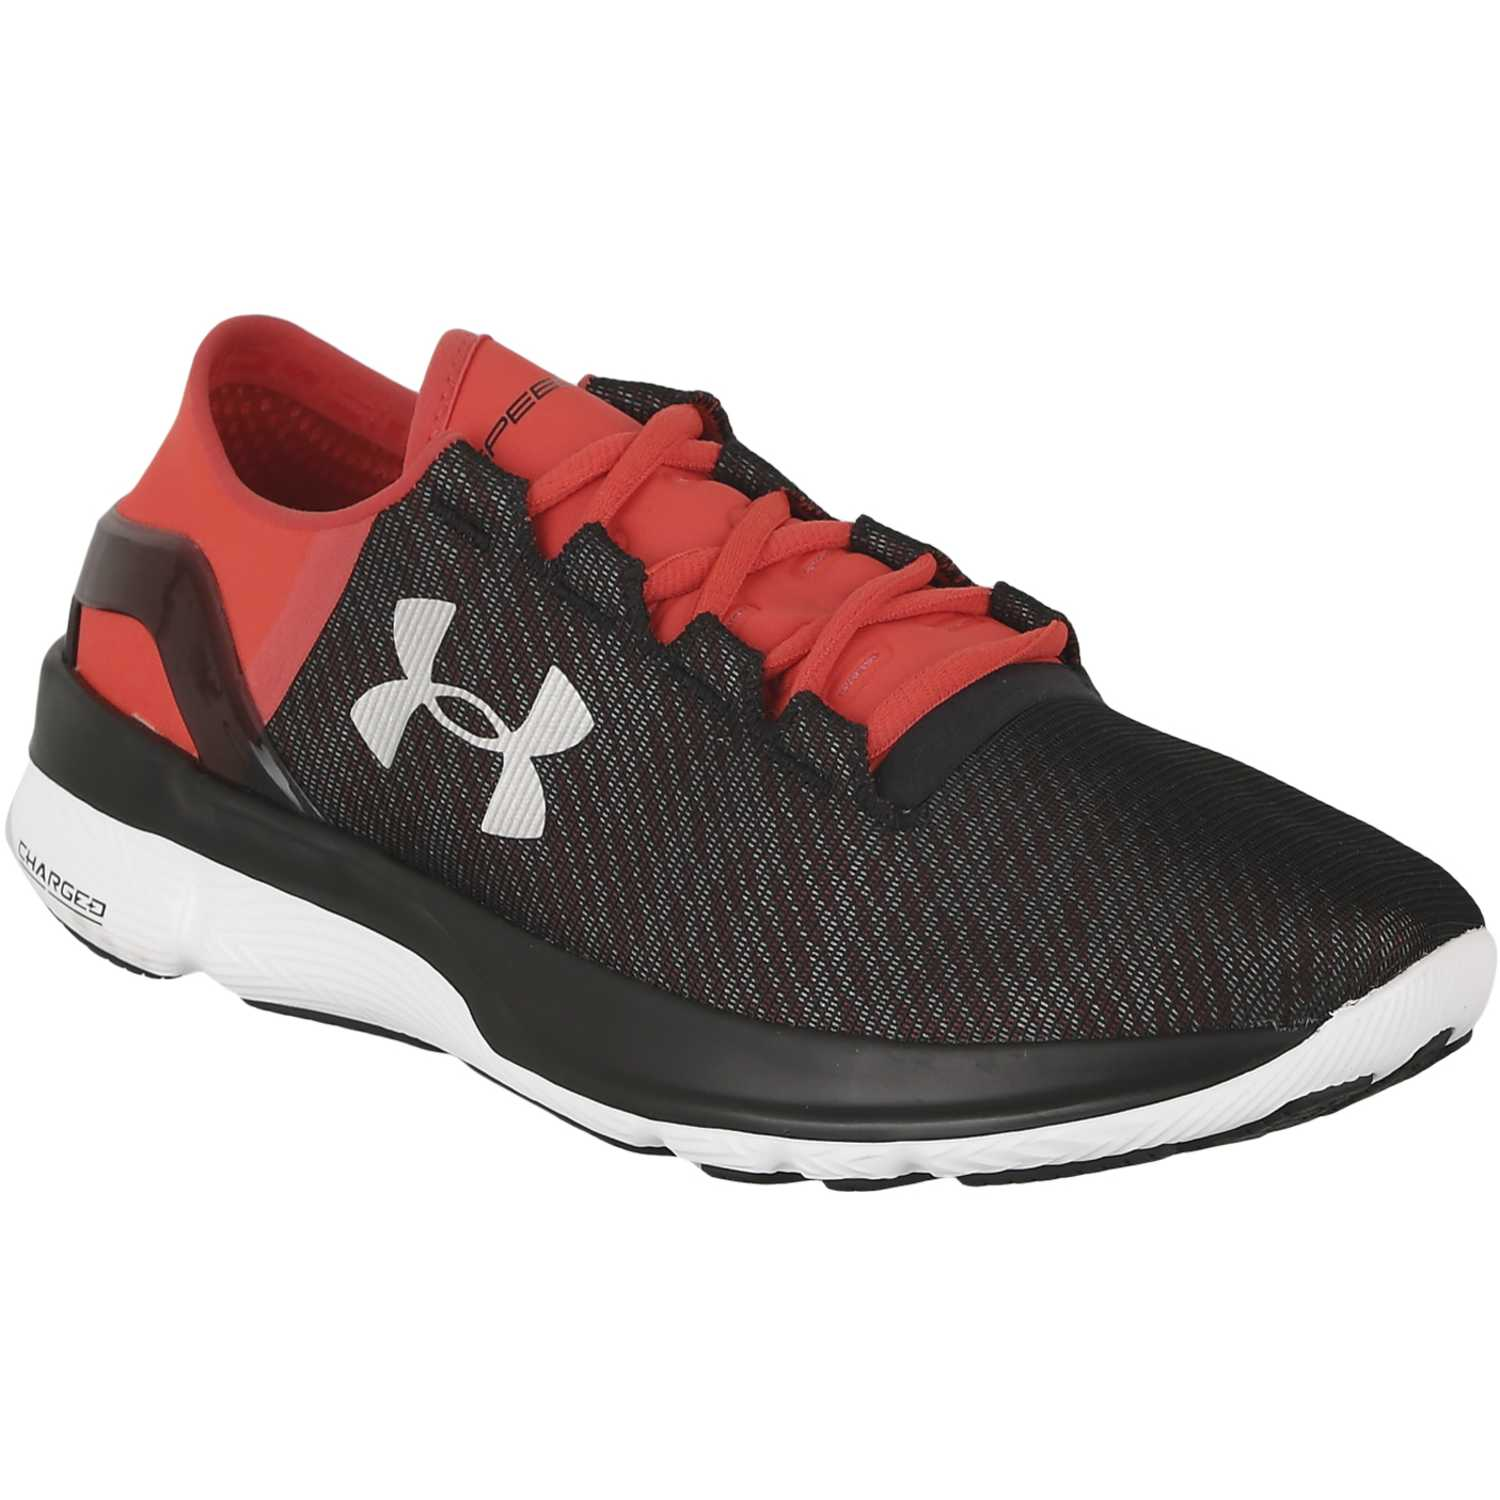 Fiesta de Mujer Under Armour Negro / Rojo ua speedform apollo 2 rf